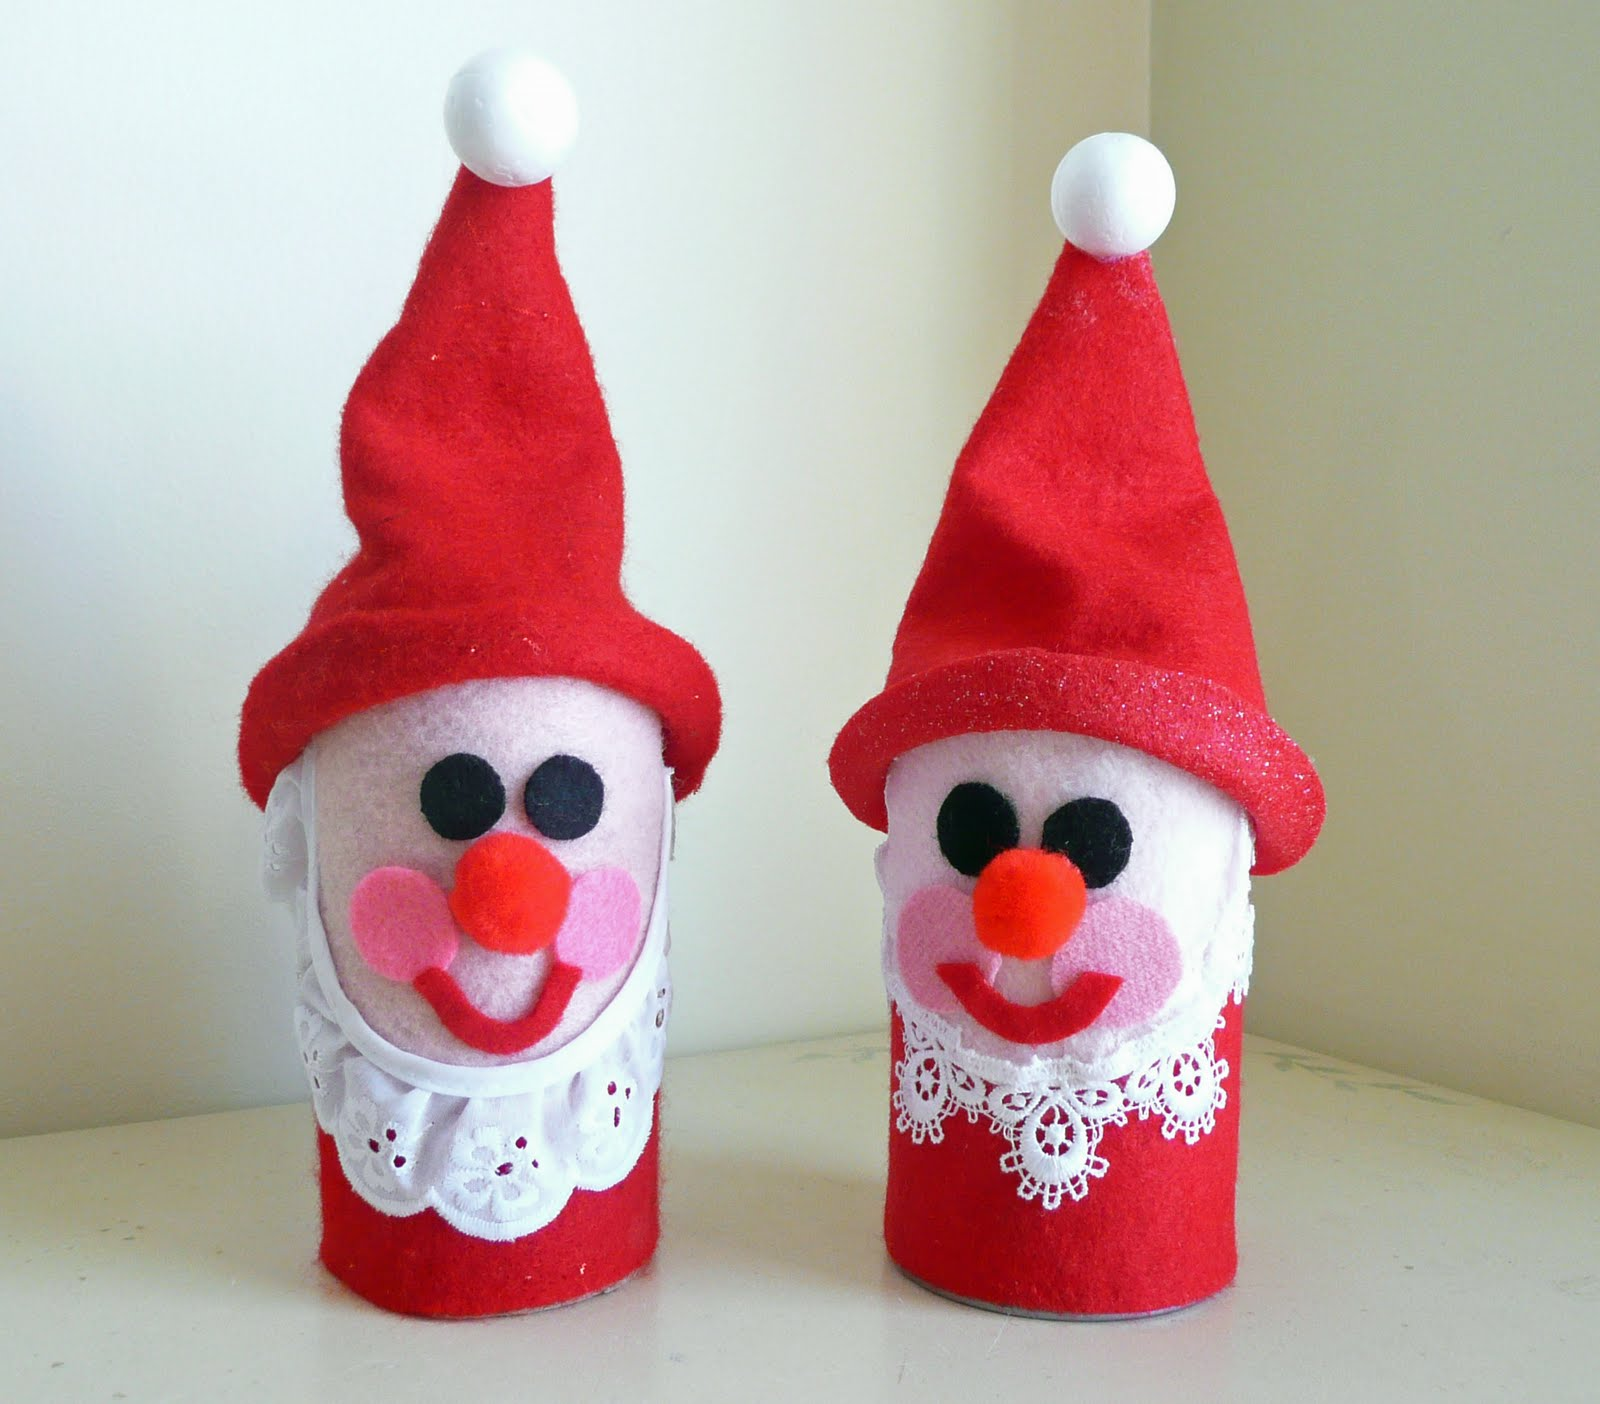 Preschool Crafts for Kids*: Toilet Roll Santa Christmas Craft